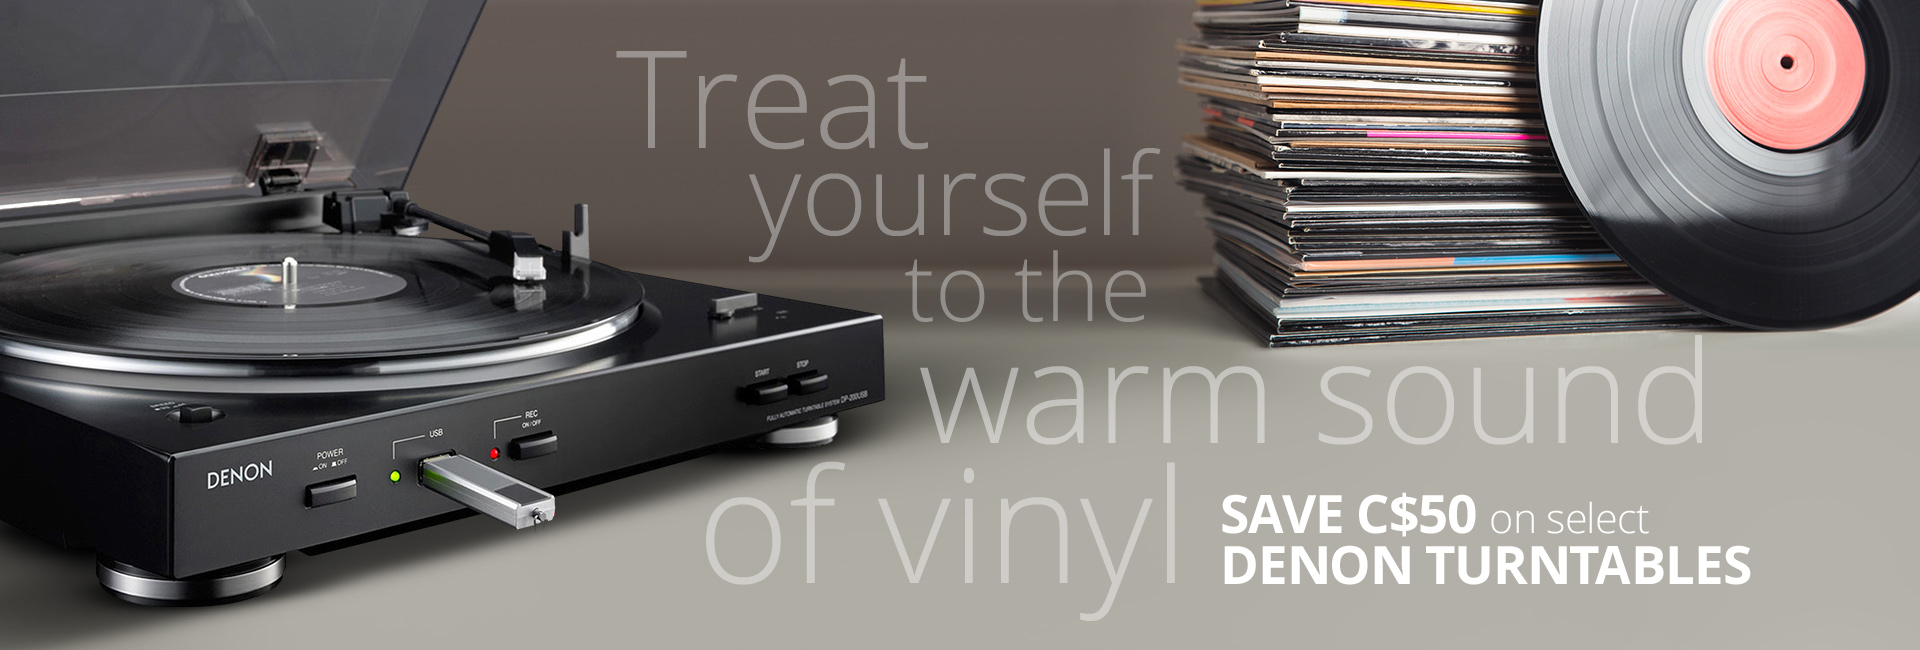 Save C$50 on these Denon turntables